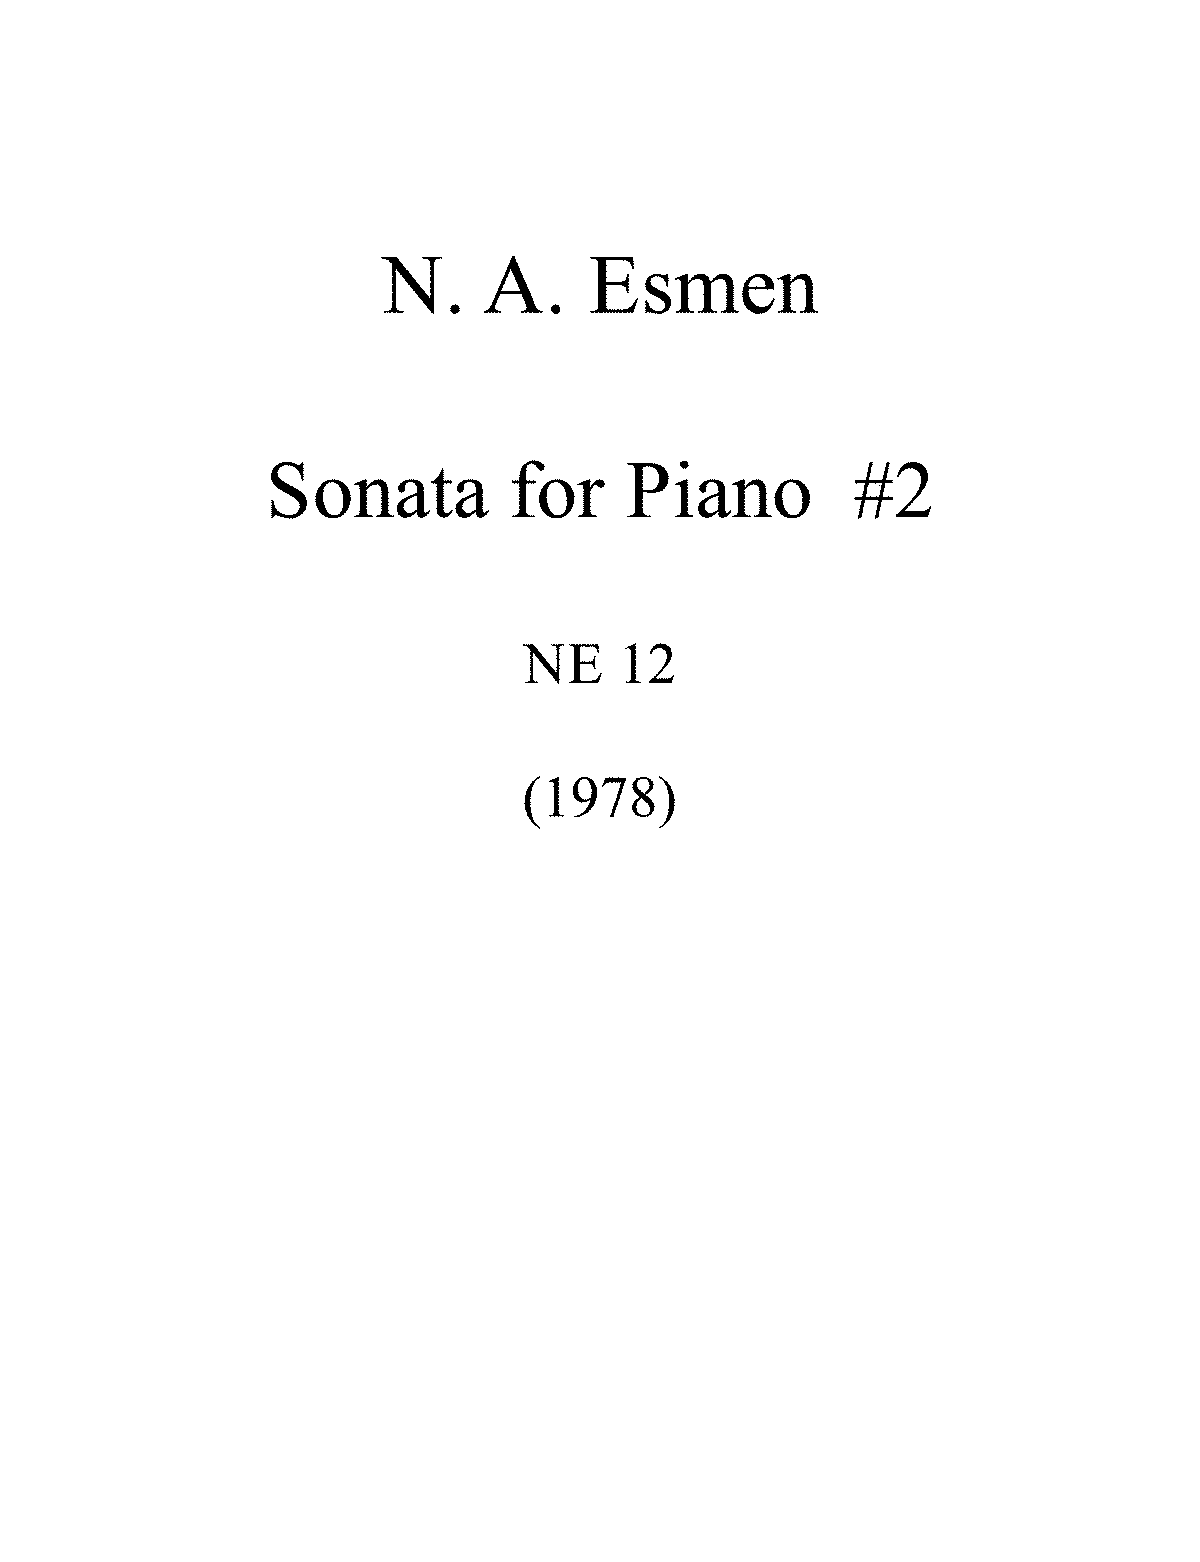 PMLP694918-Sonata -2 FINAL - Full Score.pdf